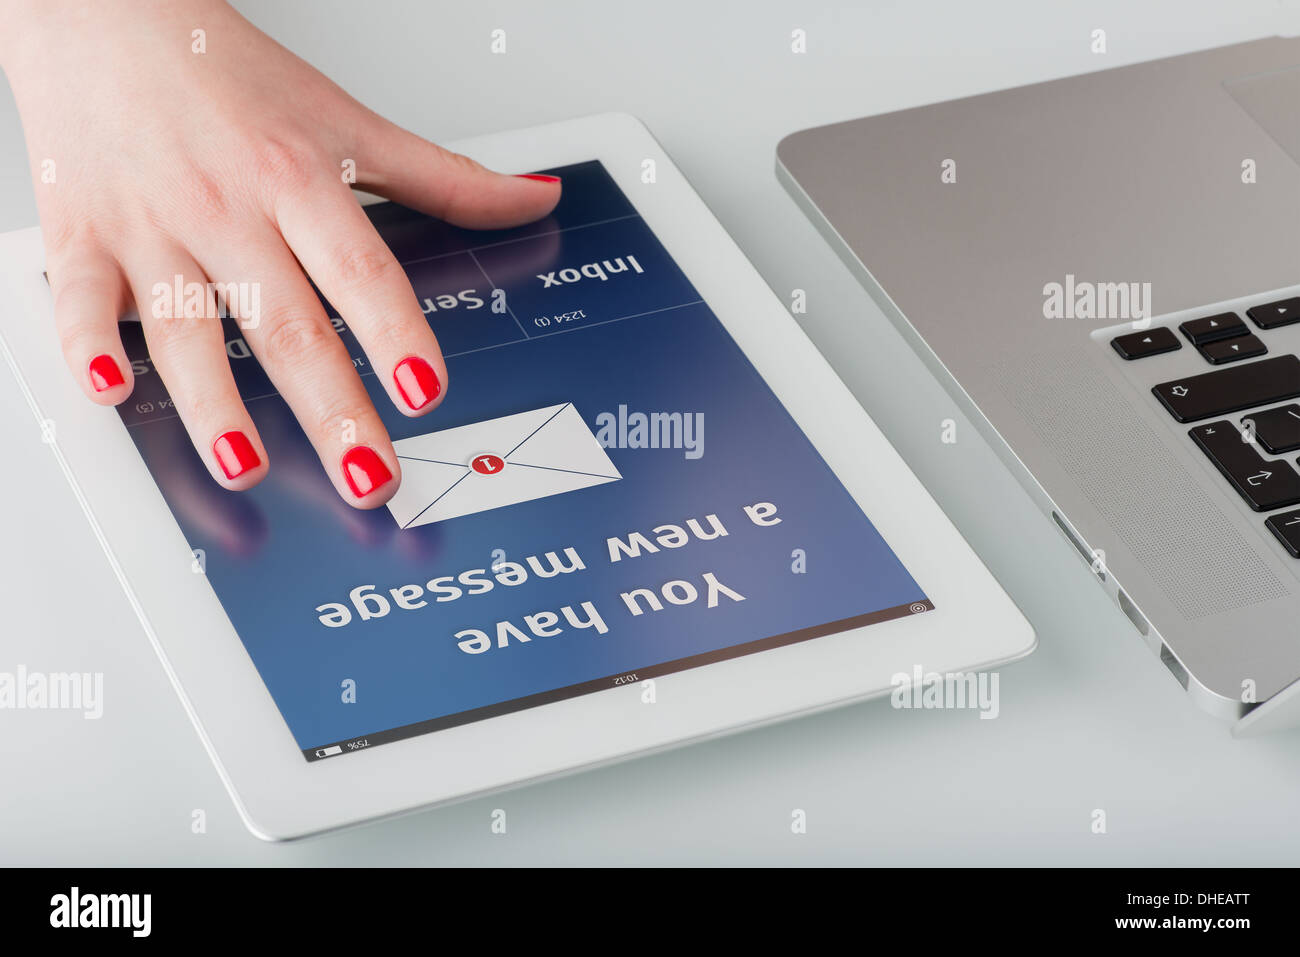 Woman's hand with red manicure opens a new email message on a tablet computer. - Stock Image